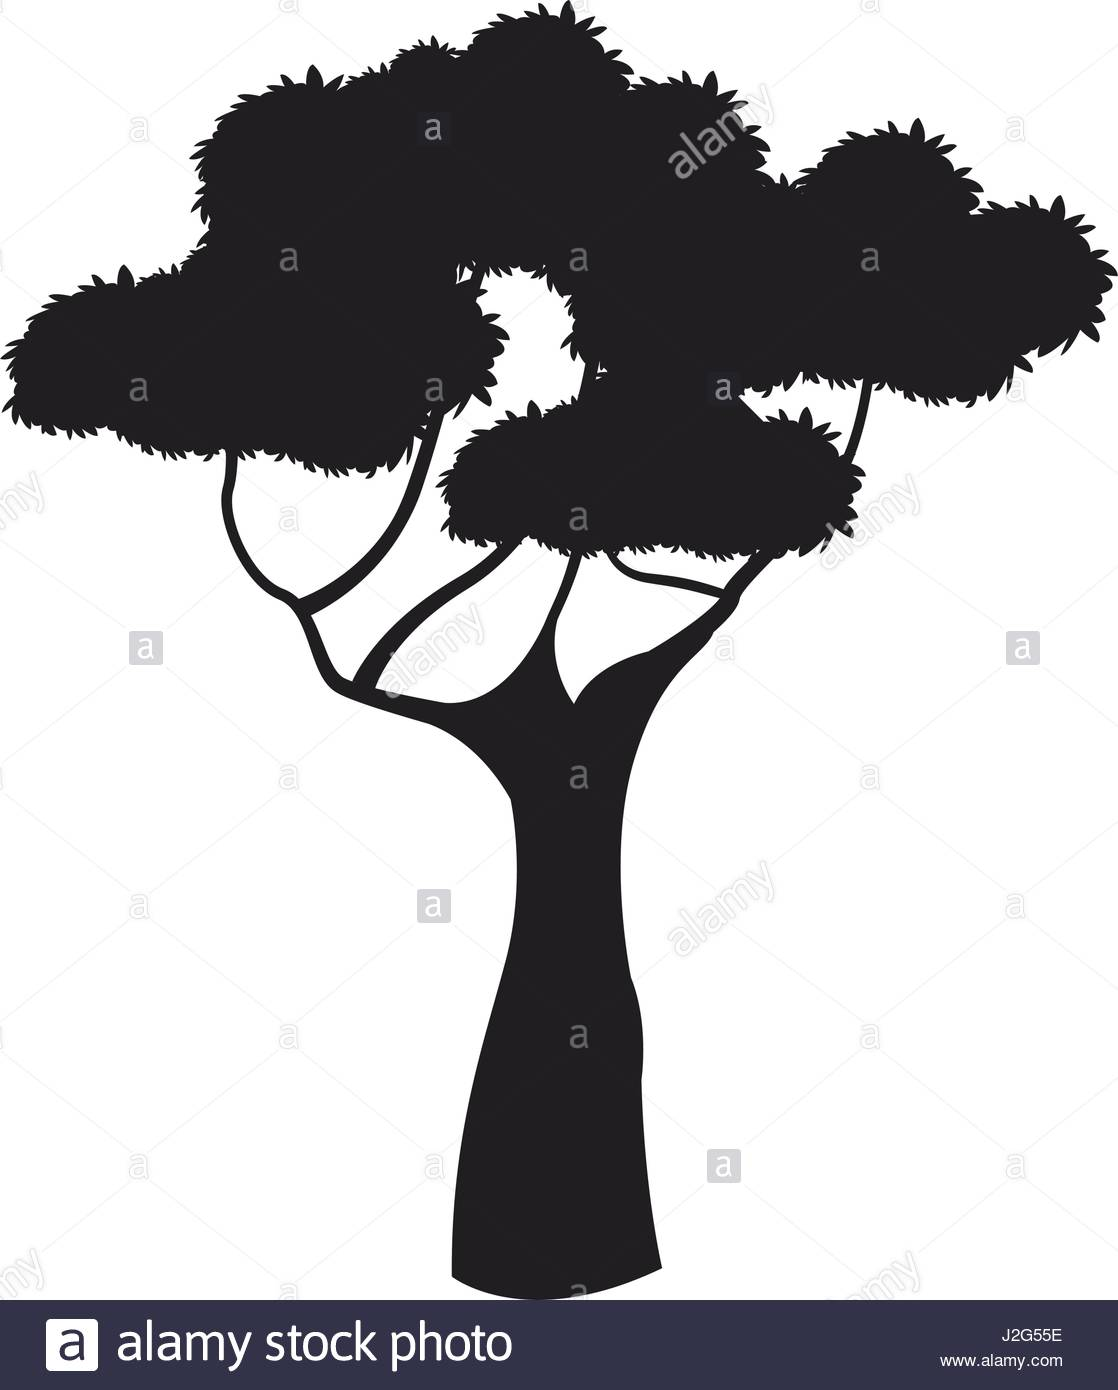 1118x1390 Silhouette Tree African Plant Design Image Stock Vector Art